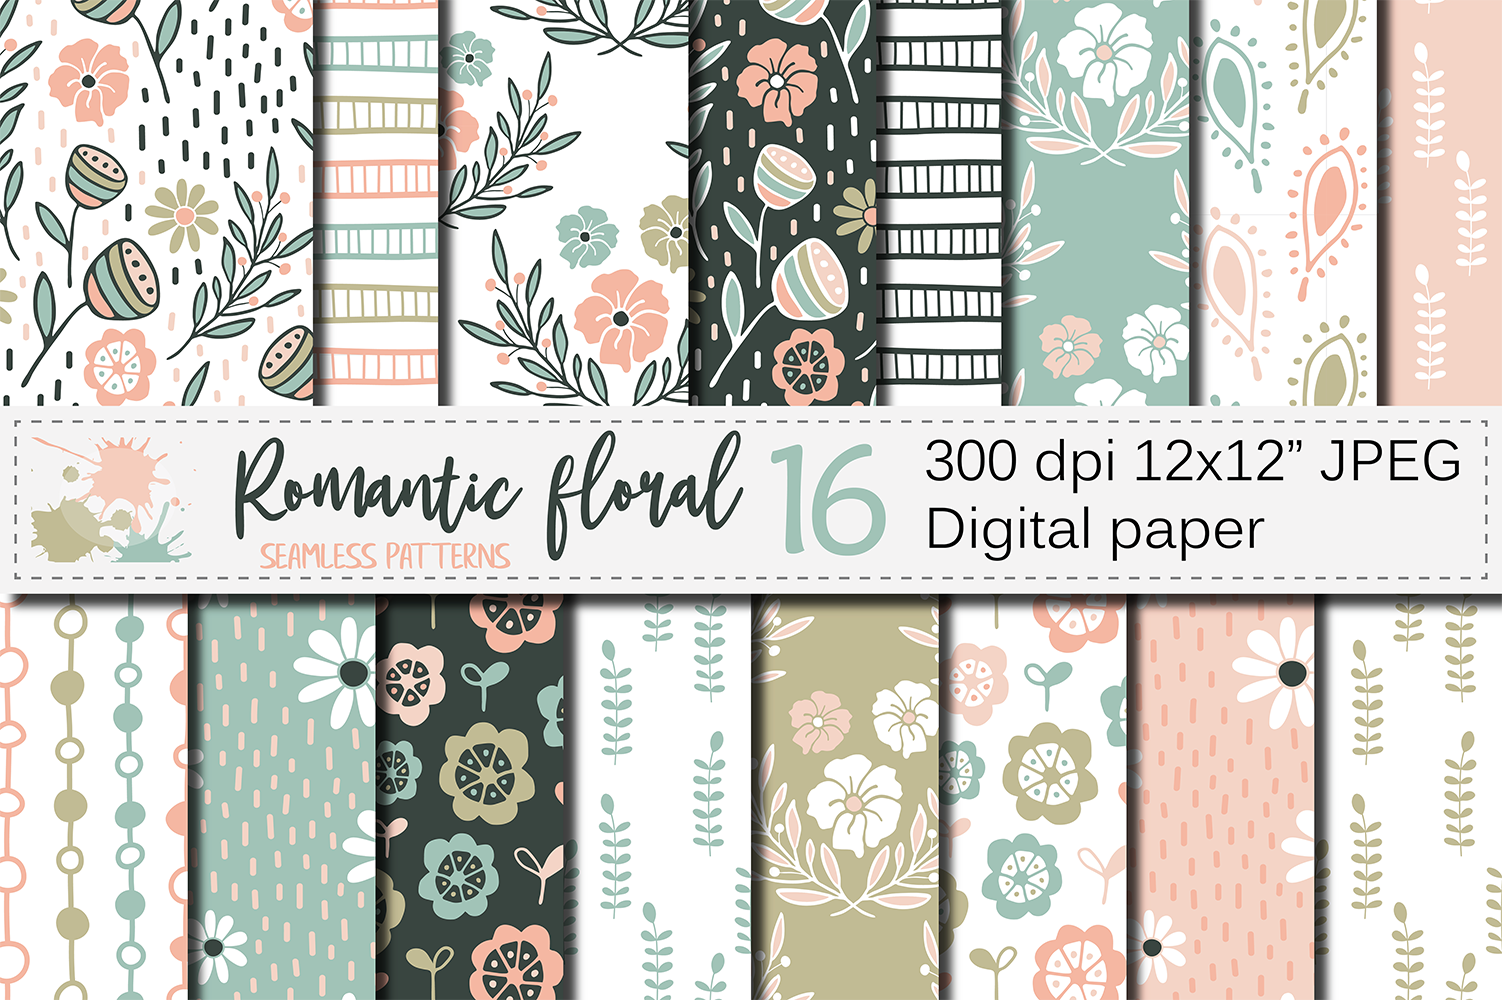 Romantic pastel floral seamless digital paper, patterns example image 1